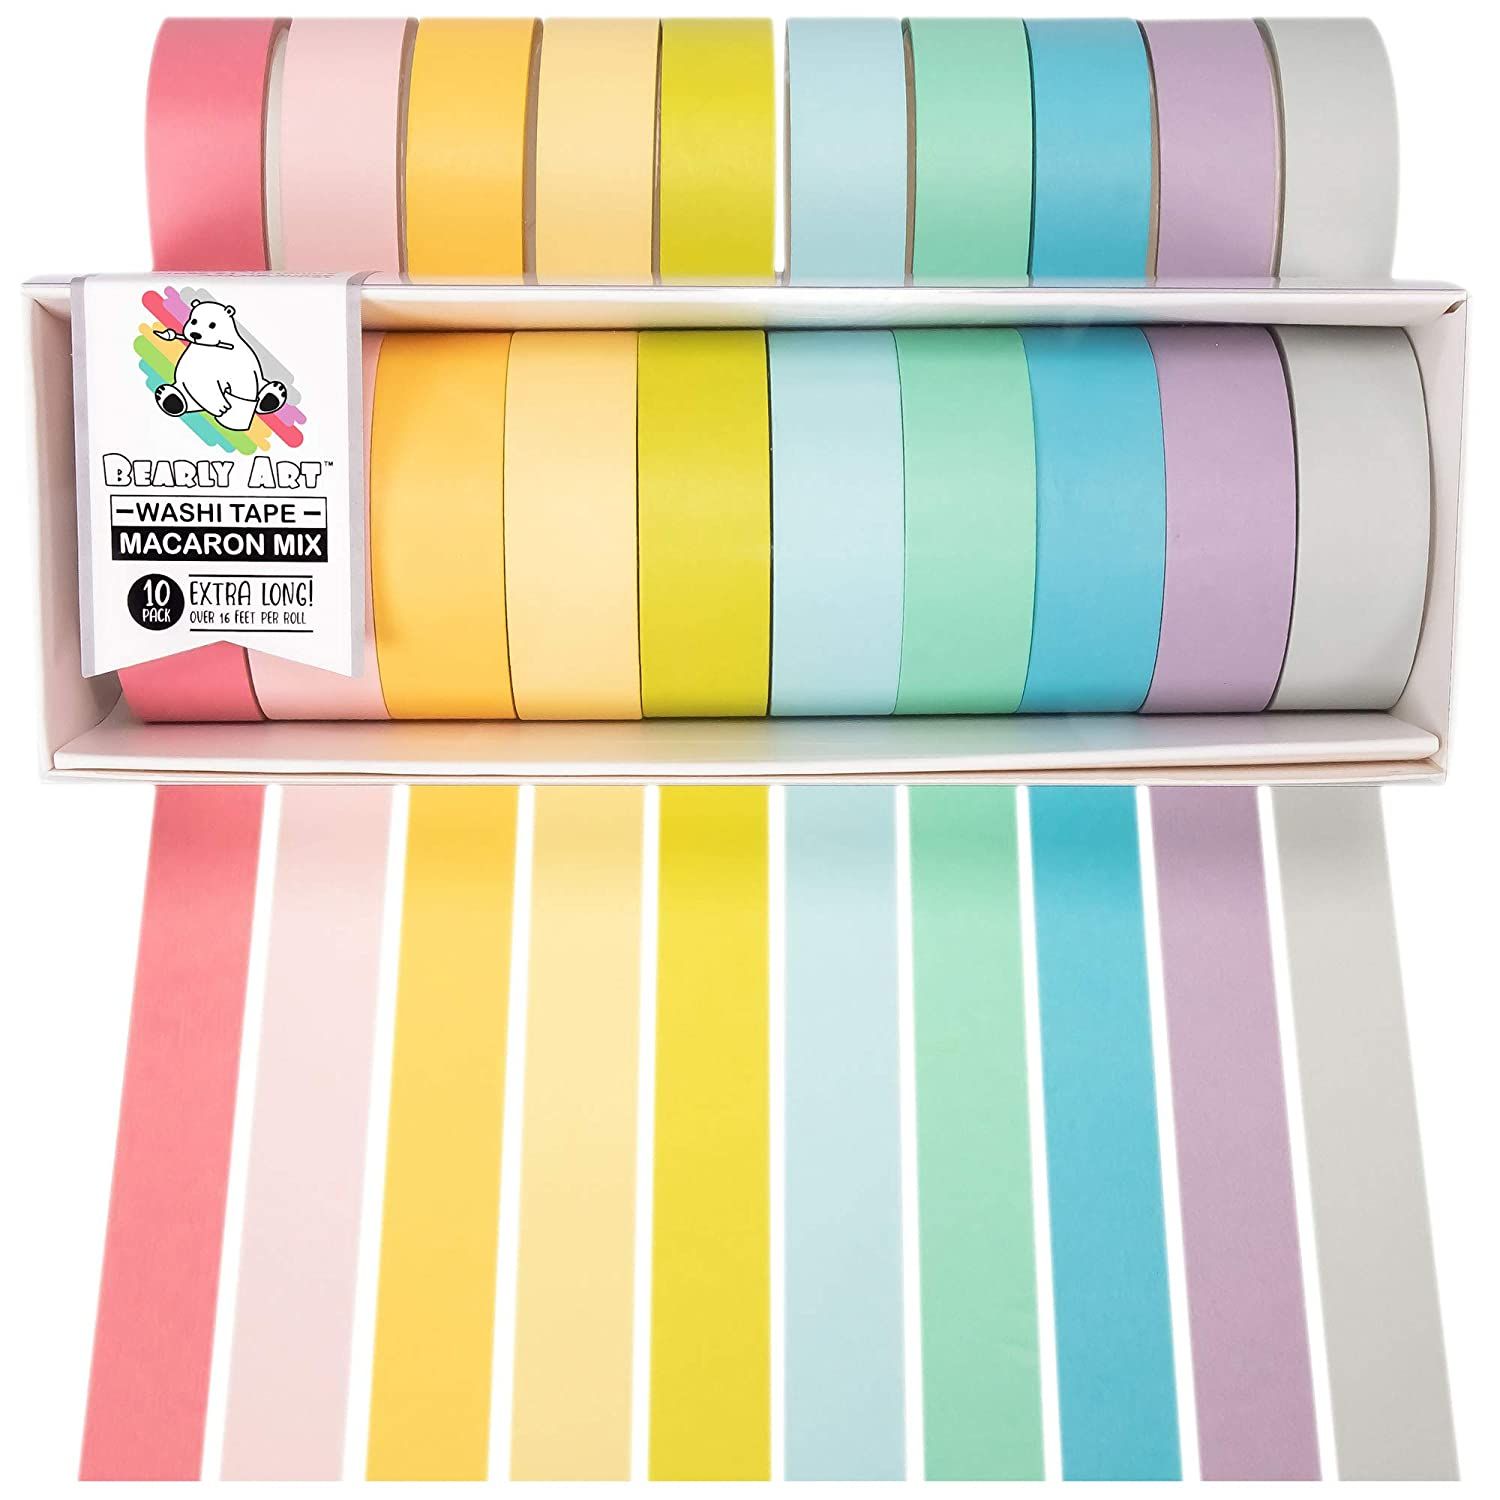 Bearly Art Washi Tape Set - Macaron Mix - 12 Pastel Colors Decorative Tape for DIY Crafts - Extra Long Rolls - Scrapbooking and Paper Crafts - 15mm Wide and 5m Long